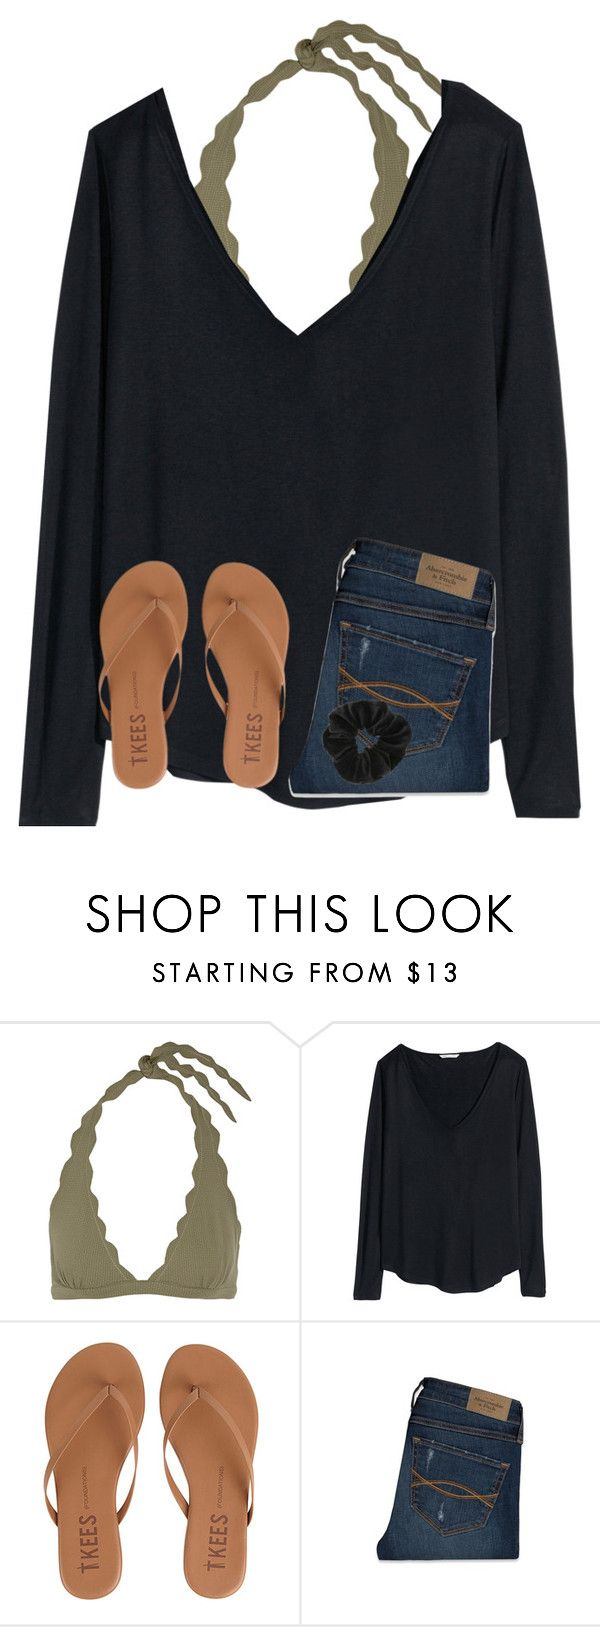 """3 more hours till D.C"" by ponyboysgirlfriend ❤ liked on Polyvore featuring Marysia Swim, H&M, Tkees, Abercrombie & Fitch and Miss Selfridge"